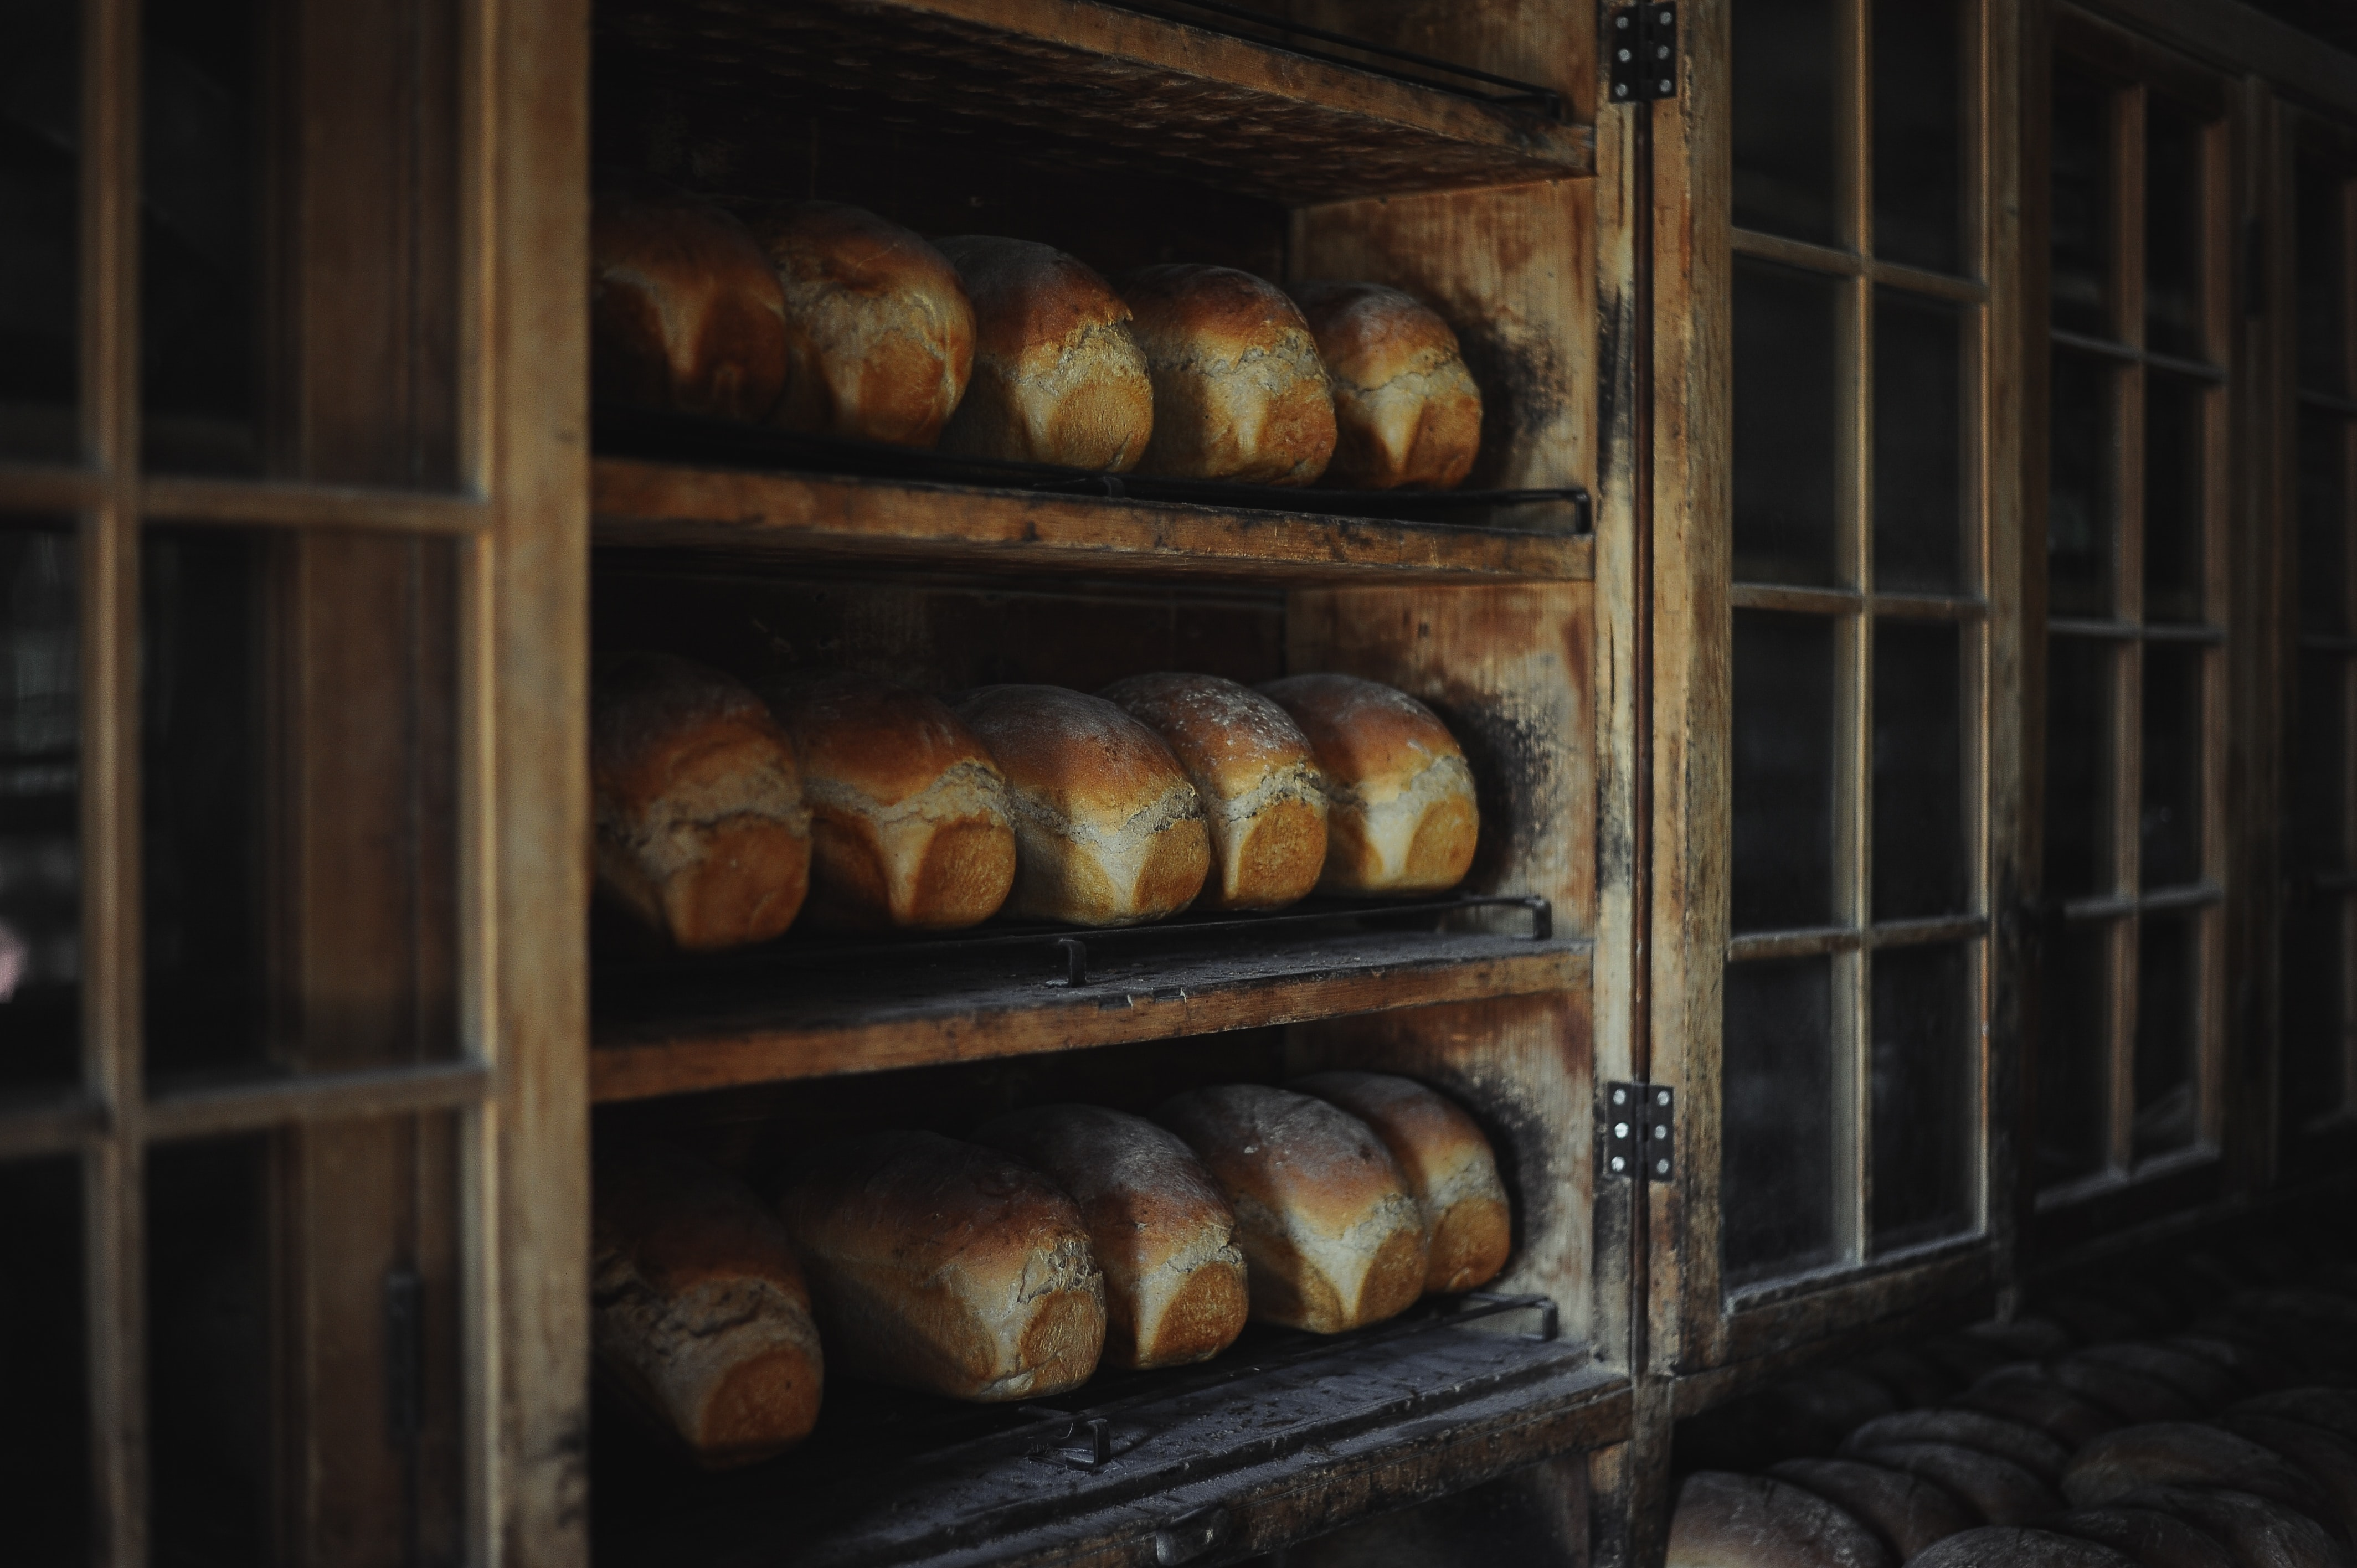 Loaves of baked bread in an old looking bakery on three wooden shelves with glass windows